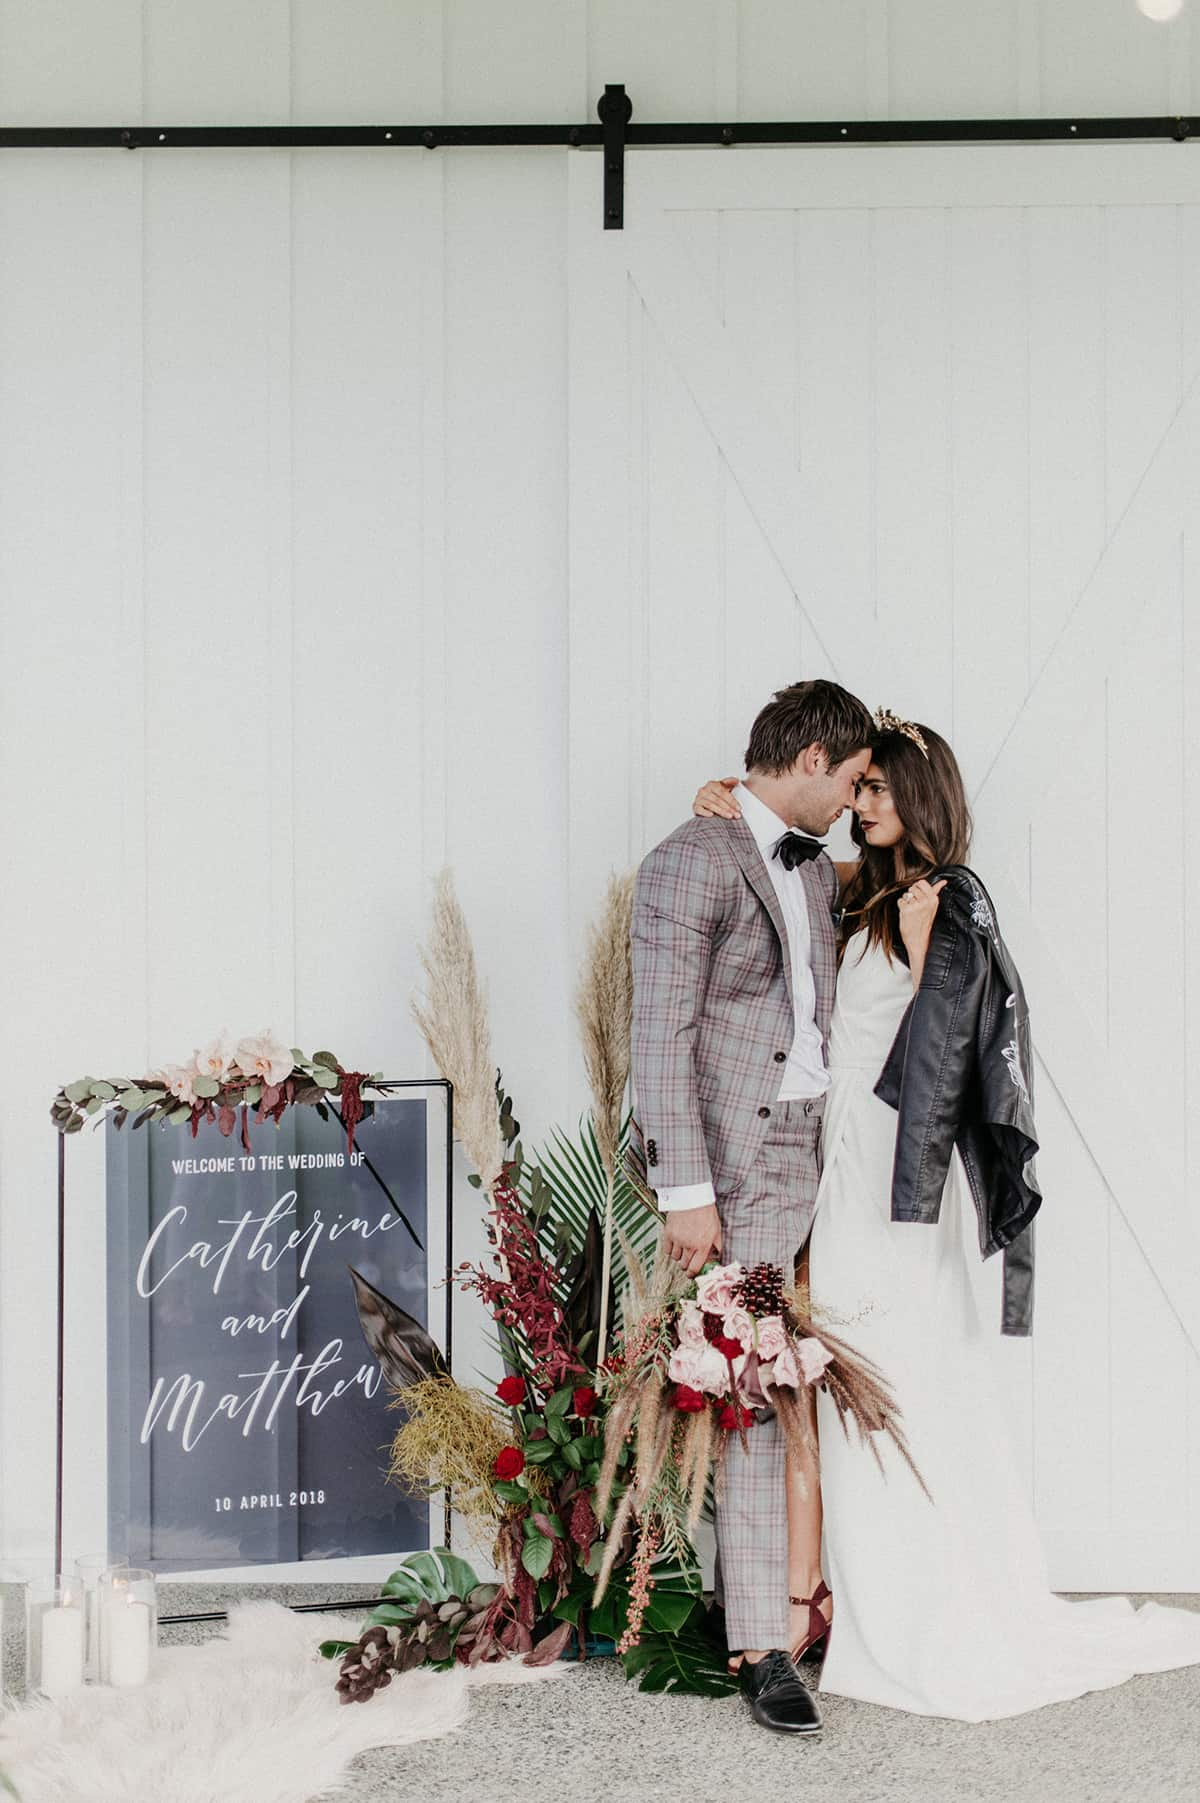 bride and groom with wedding sign